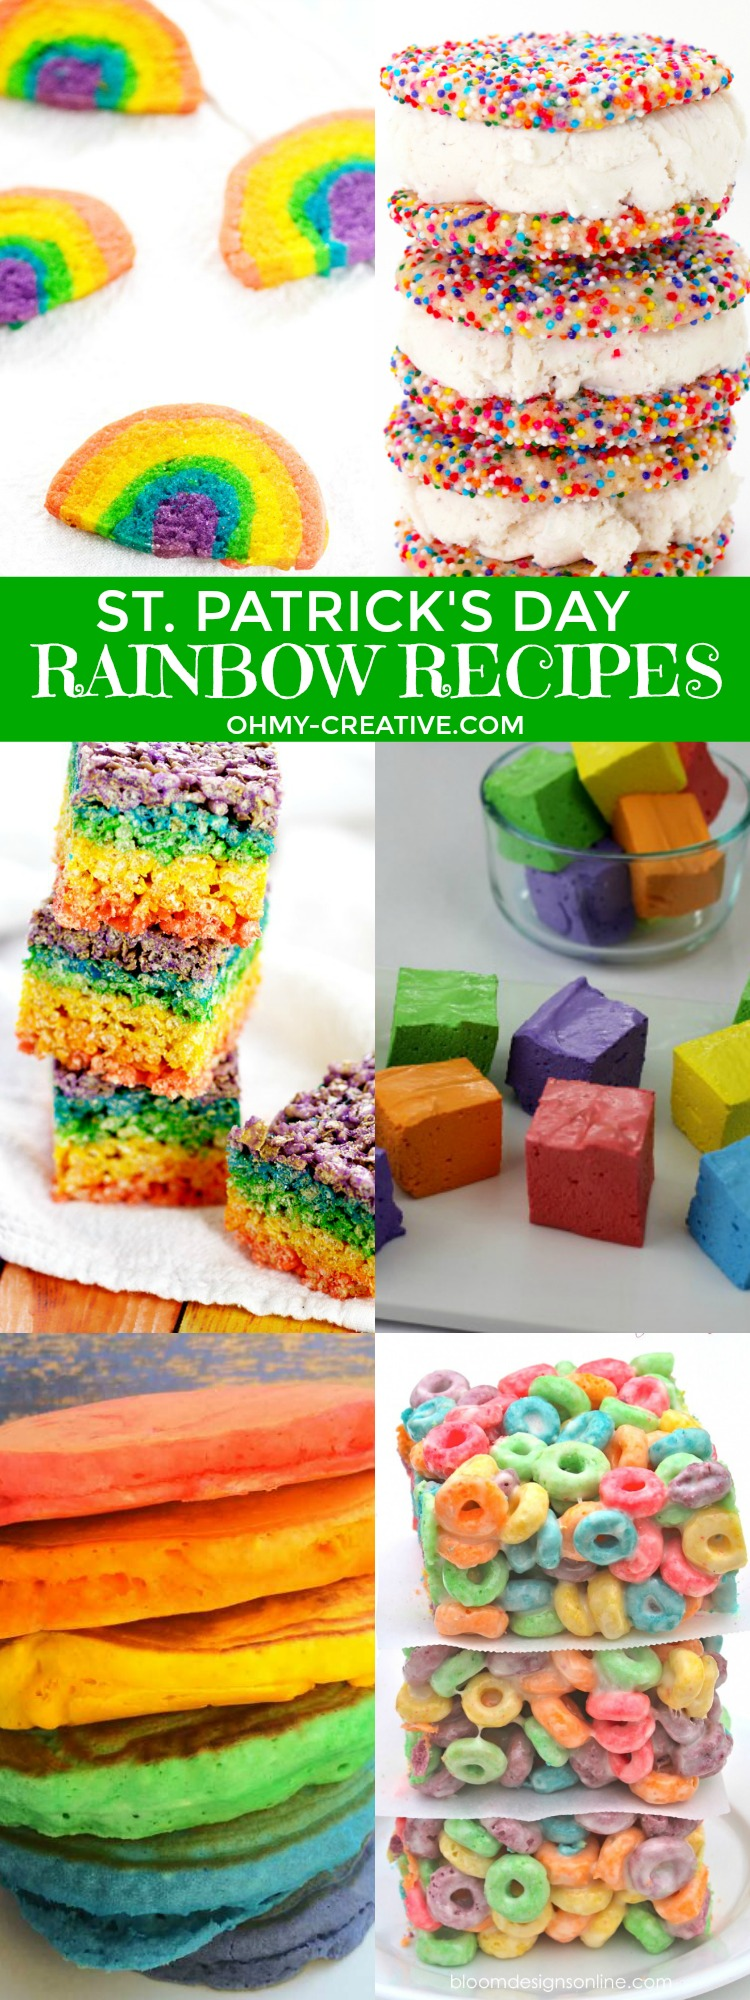 How to make rainbow food with these Rad Rainbow Recipes! Fun for Rainbow Party Themes or St. Patrick's Day | OHMY-CREATIVE.COM | Rice Krispie Treats | Homemade Marshmallows | Lucky Charms | Rainbow Pancakes | Rainbow Food | Rainbow Sprinkles